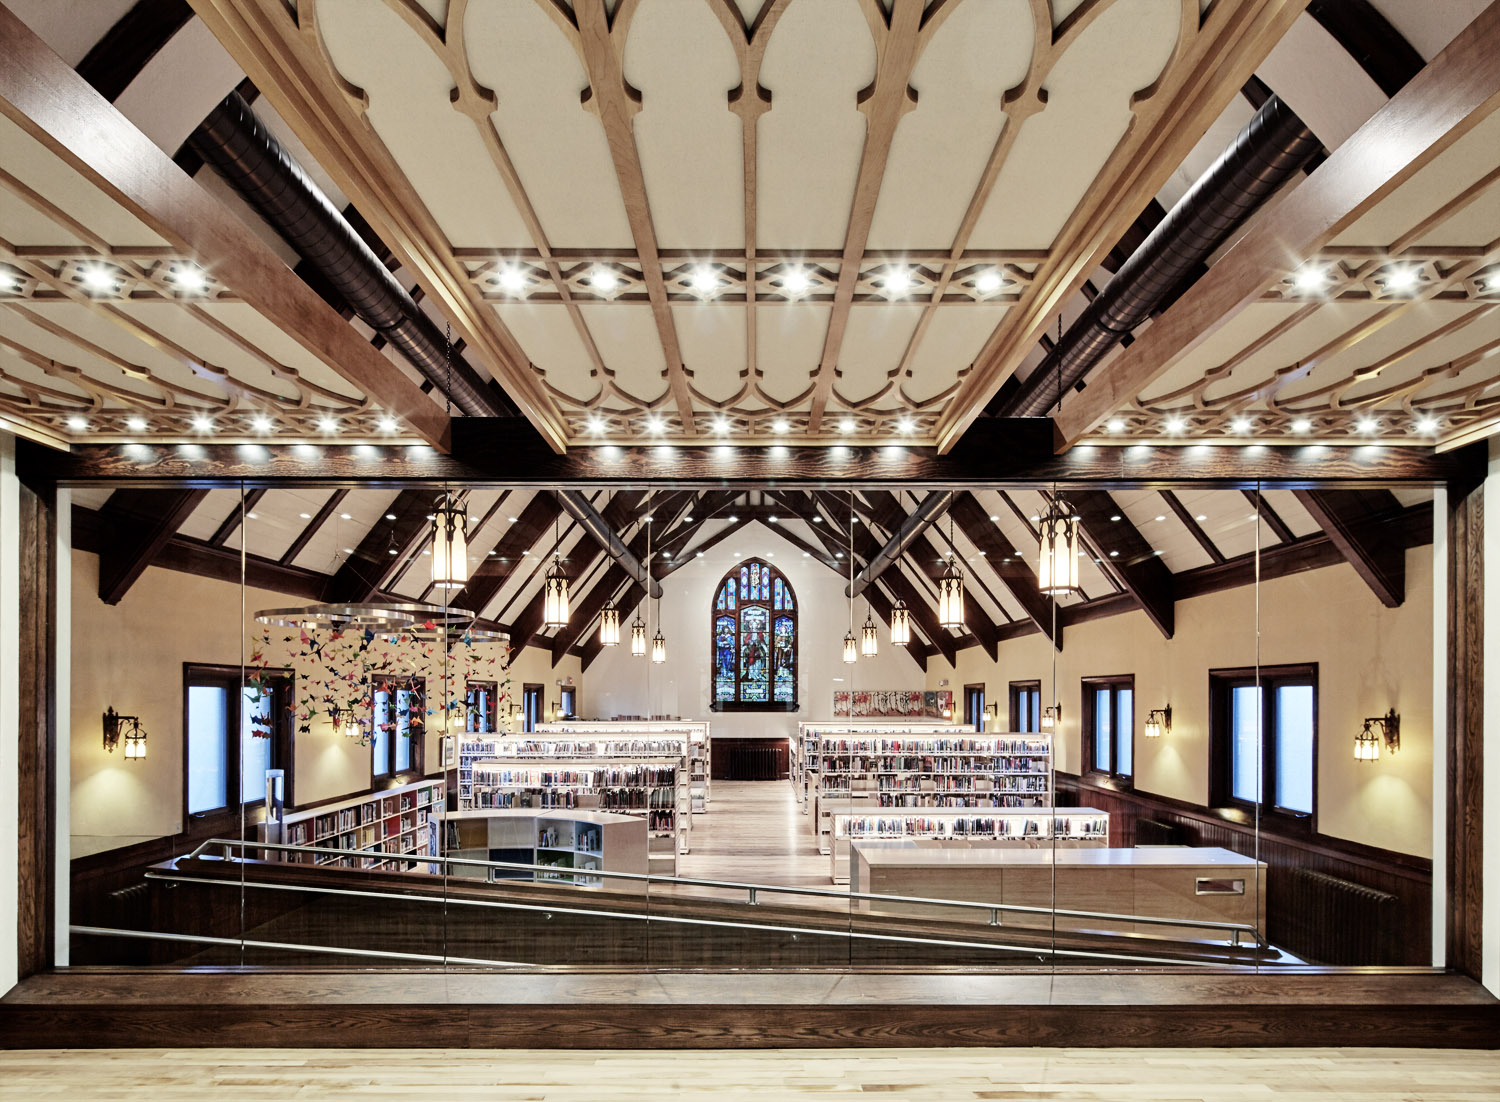 houdinidesign_ARCHITECTS_Kentville Library_Kentville_Annapolis Valley_Adaptive_Reuse_Church_Renovation_Community Room_01.jpg